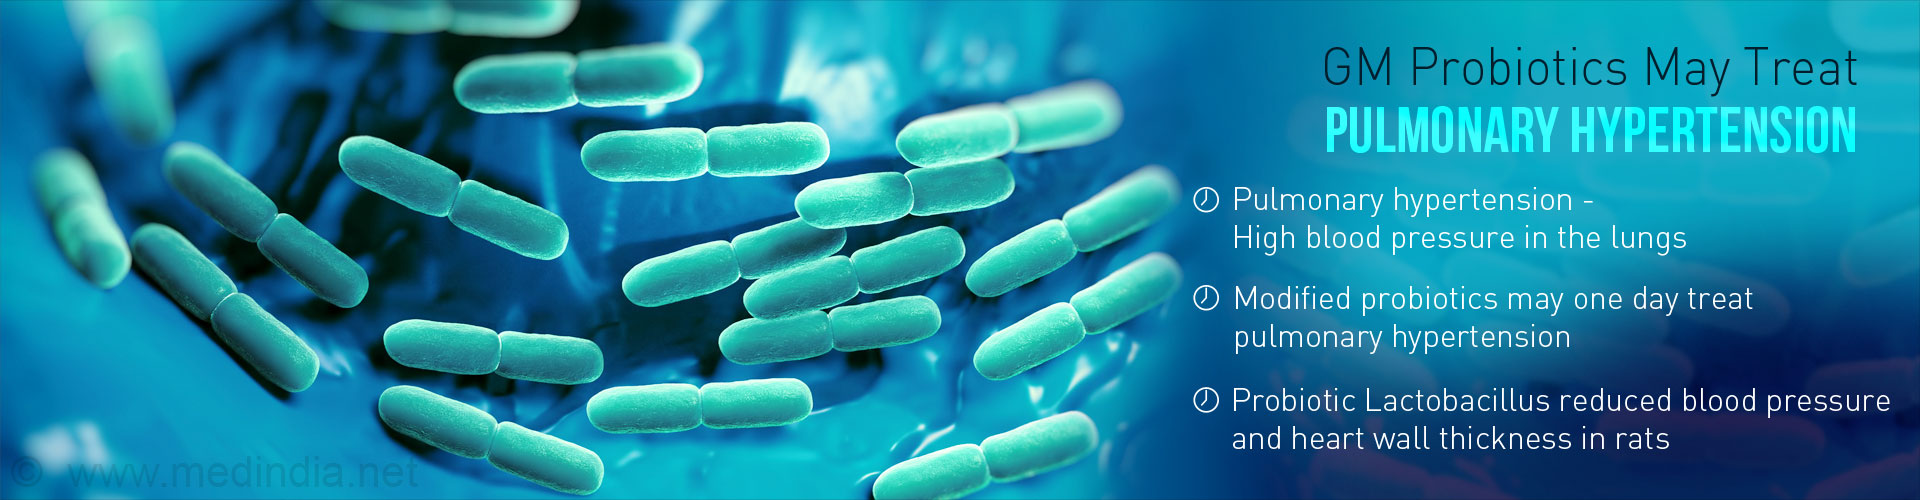 Probiotics may Emerge as Novel Drug Delivery Systems in Pulmonary Hypertension